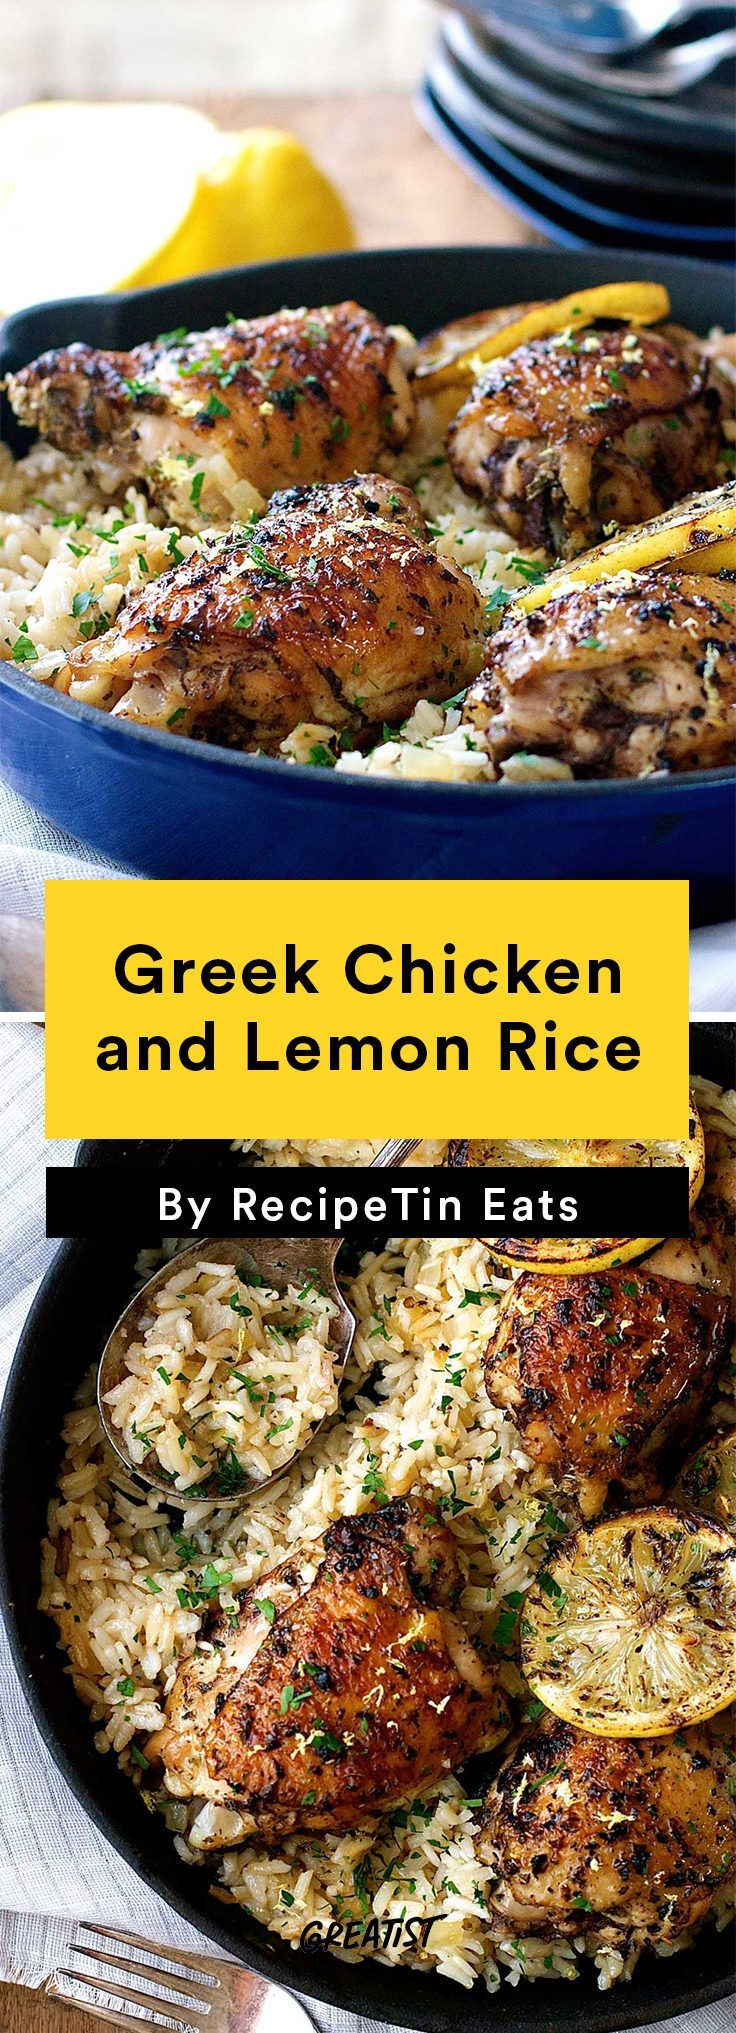 1. Greek Chicken and Lemon Rice #Greatist http://greatist.com/eat/chicken-thigh-recipes